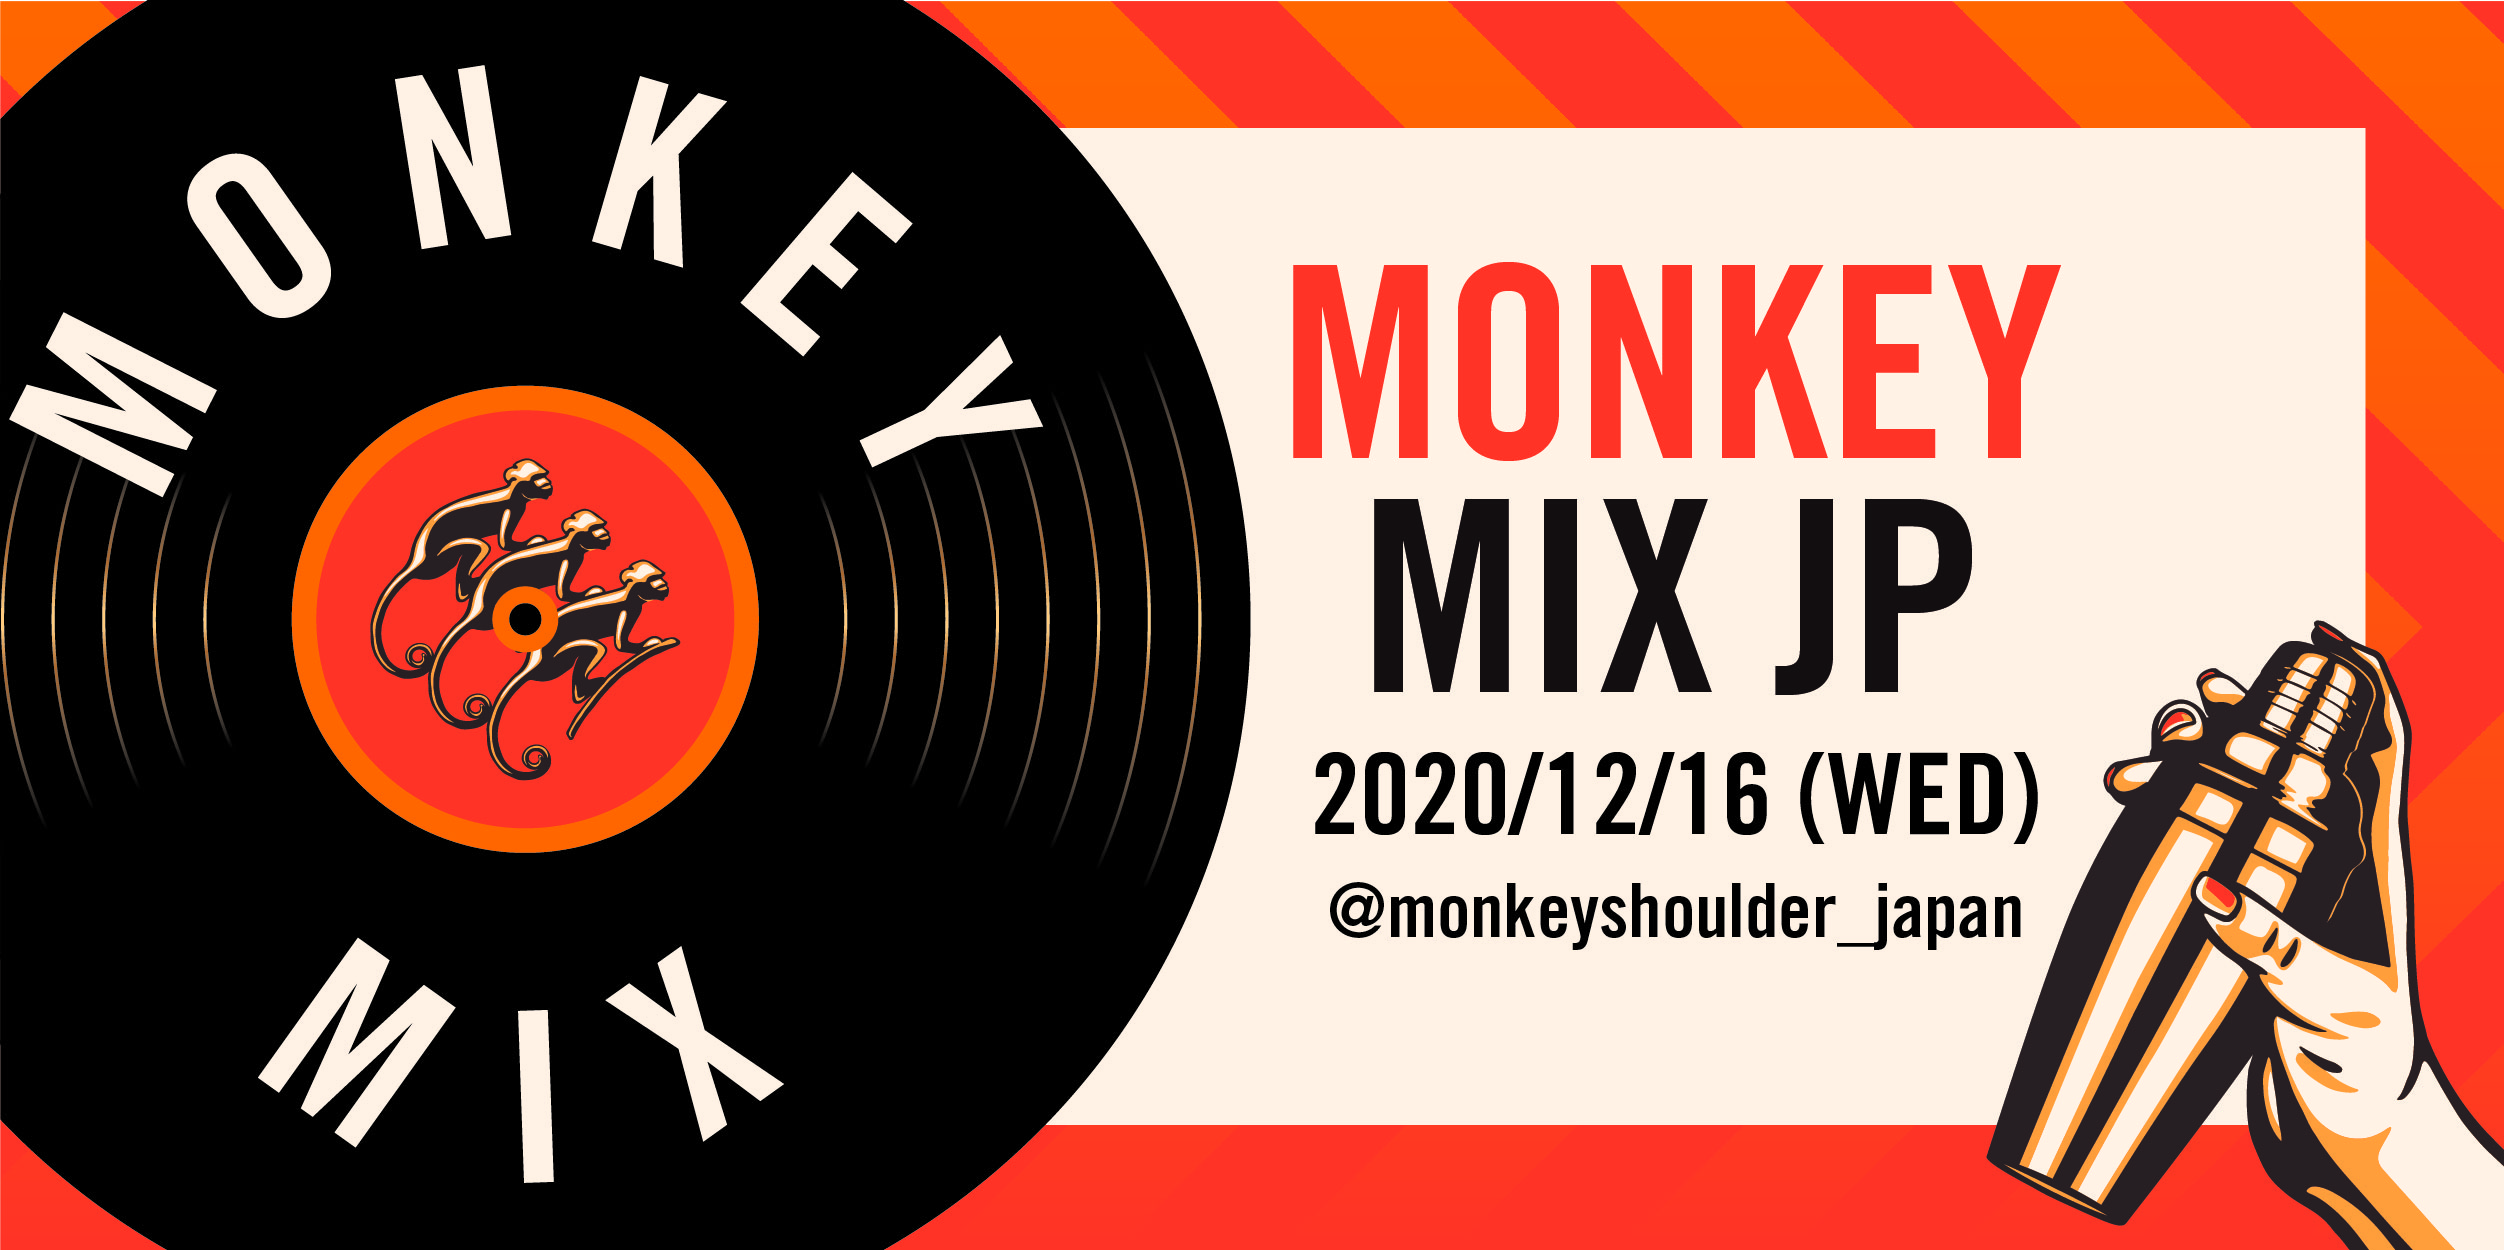 《MONKEY MIX JP》